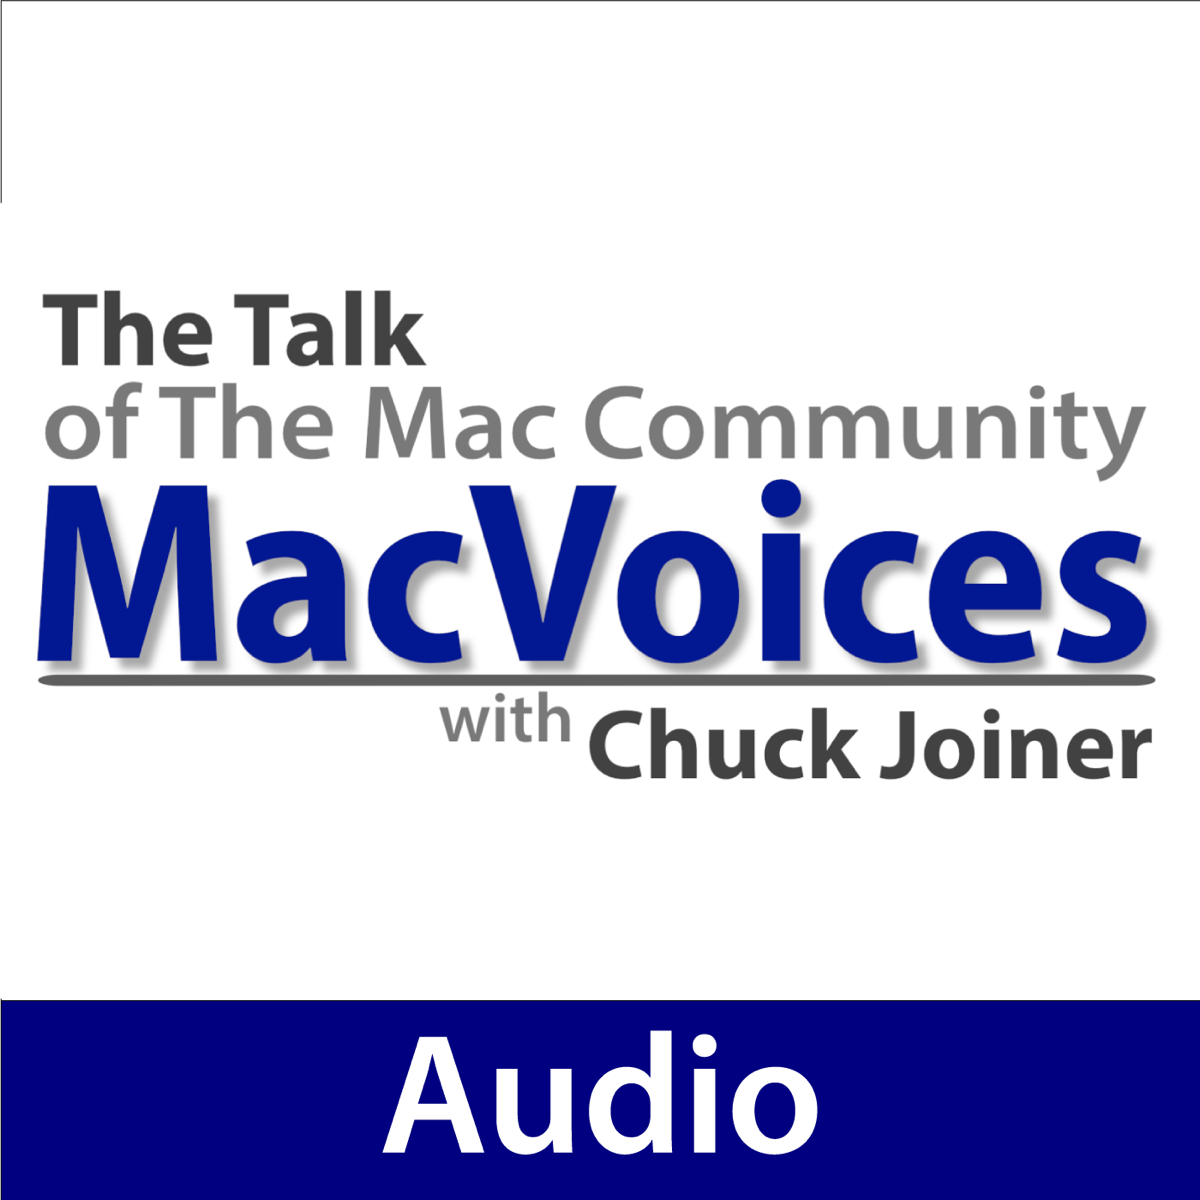 Best episodes of MacVoices Audio | Podyssey Podcasts